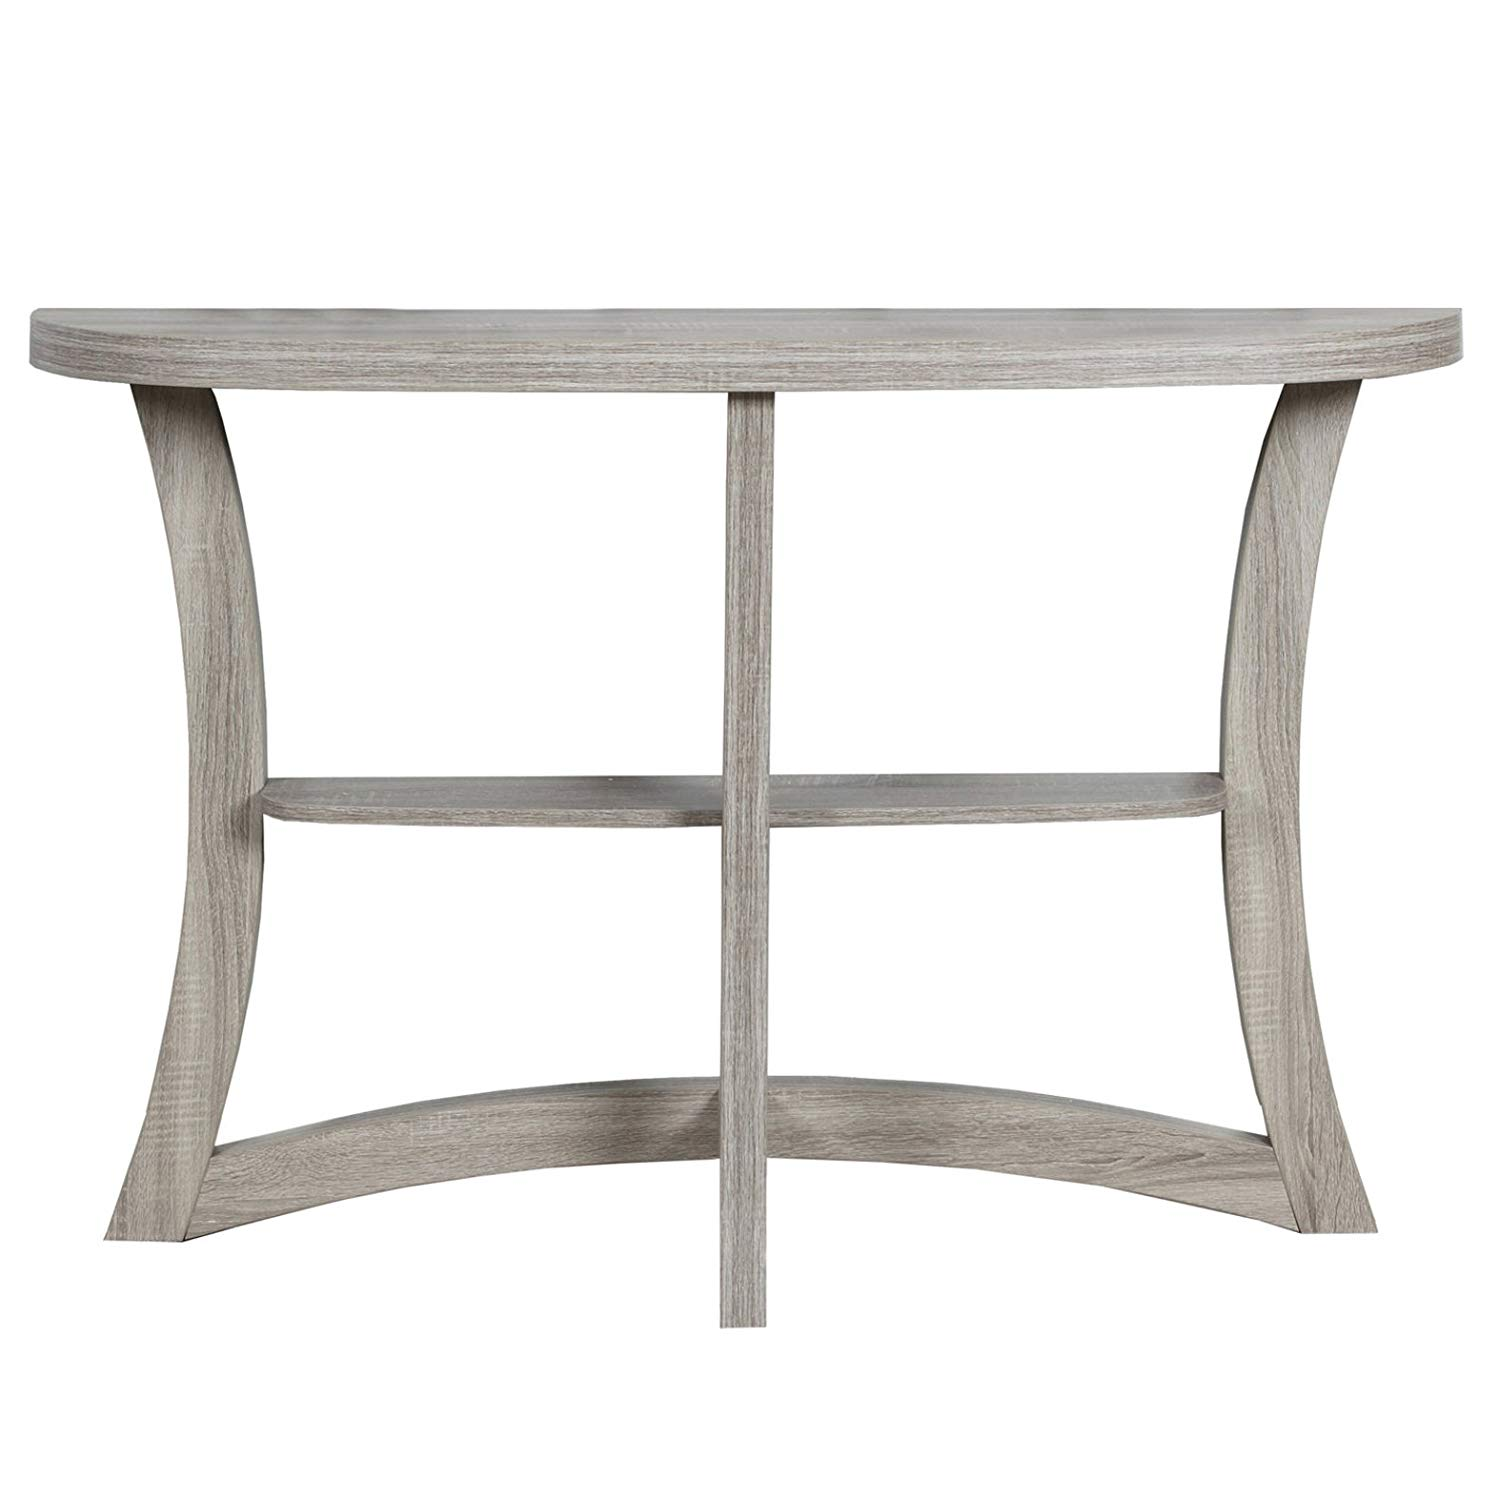 monarch two tier hall console accent table dark taupe kitchen dining hutch nesting modern hallway small oak side tables for living room office storage cabinets west elm planner